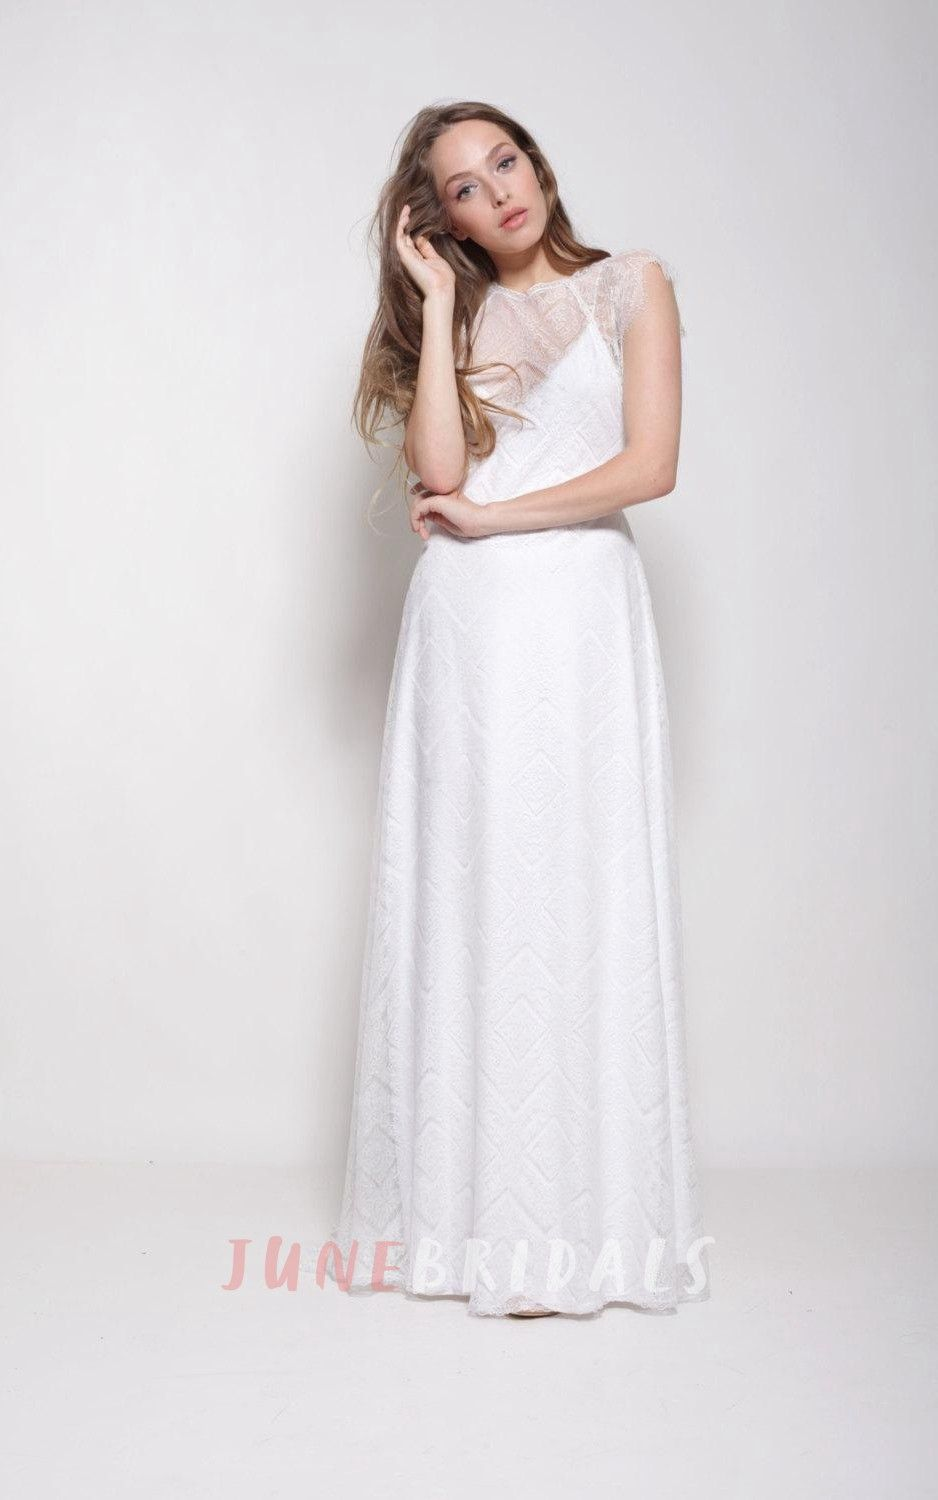 Long sleeve casual wedding dress  Sleeveless Lace Long Cap Dress With Illusion Back  Bohemian Wedding